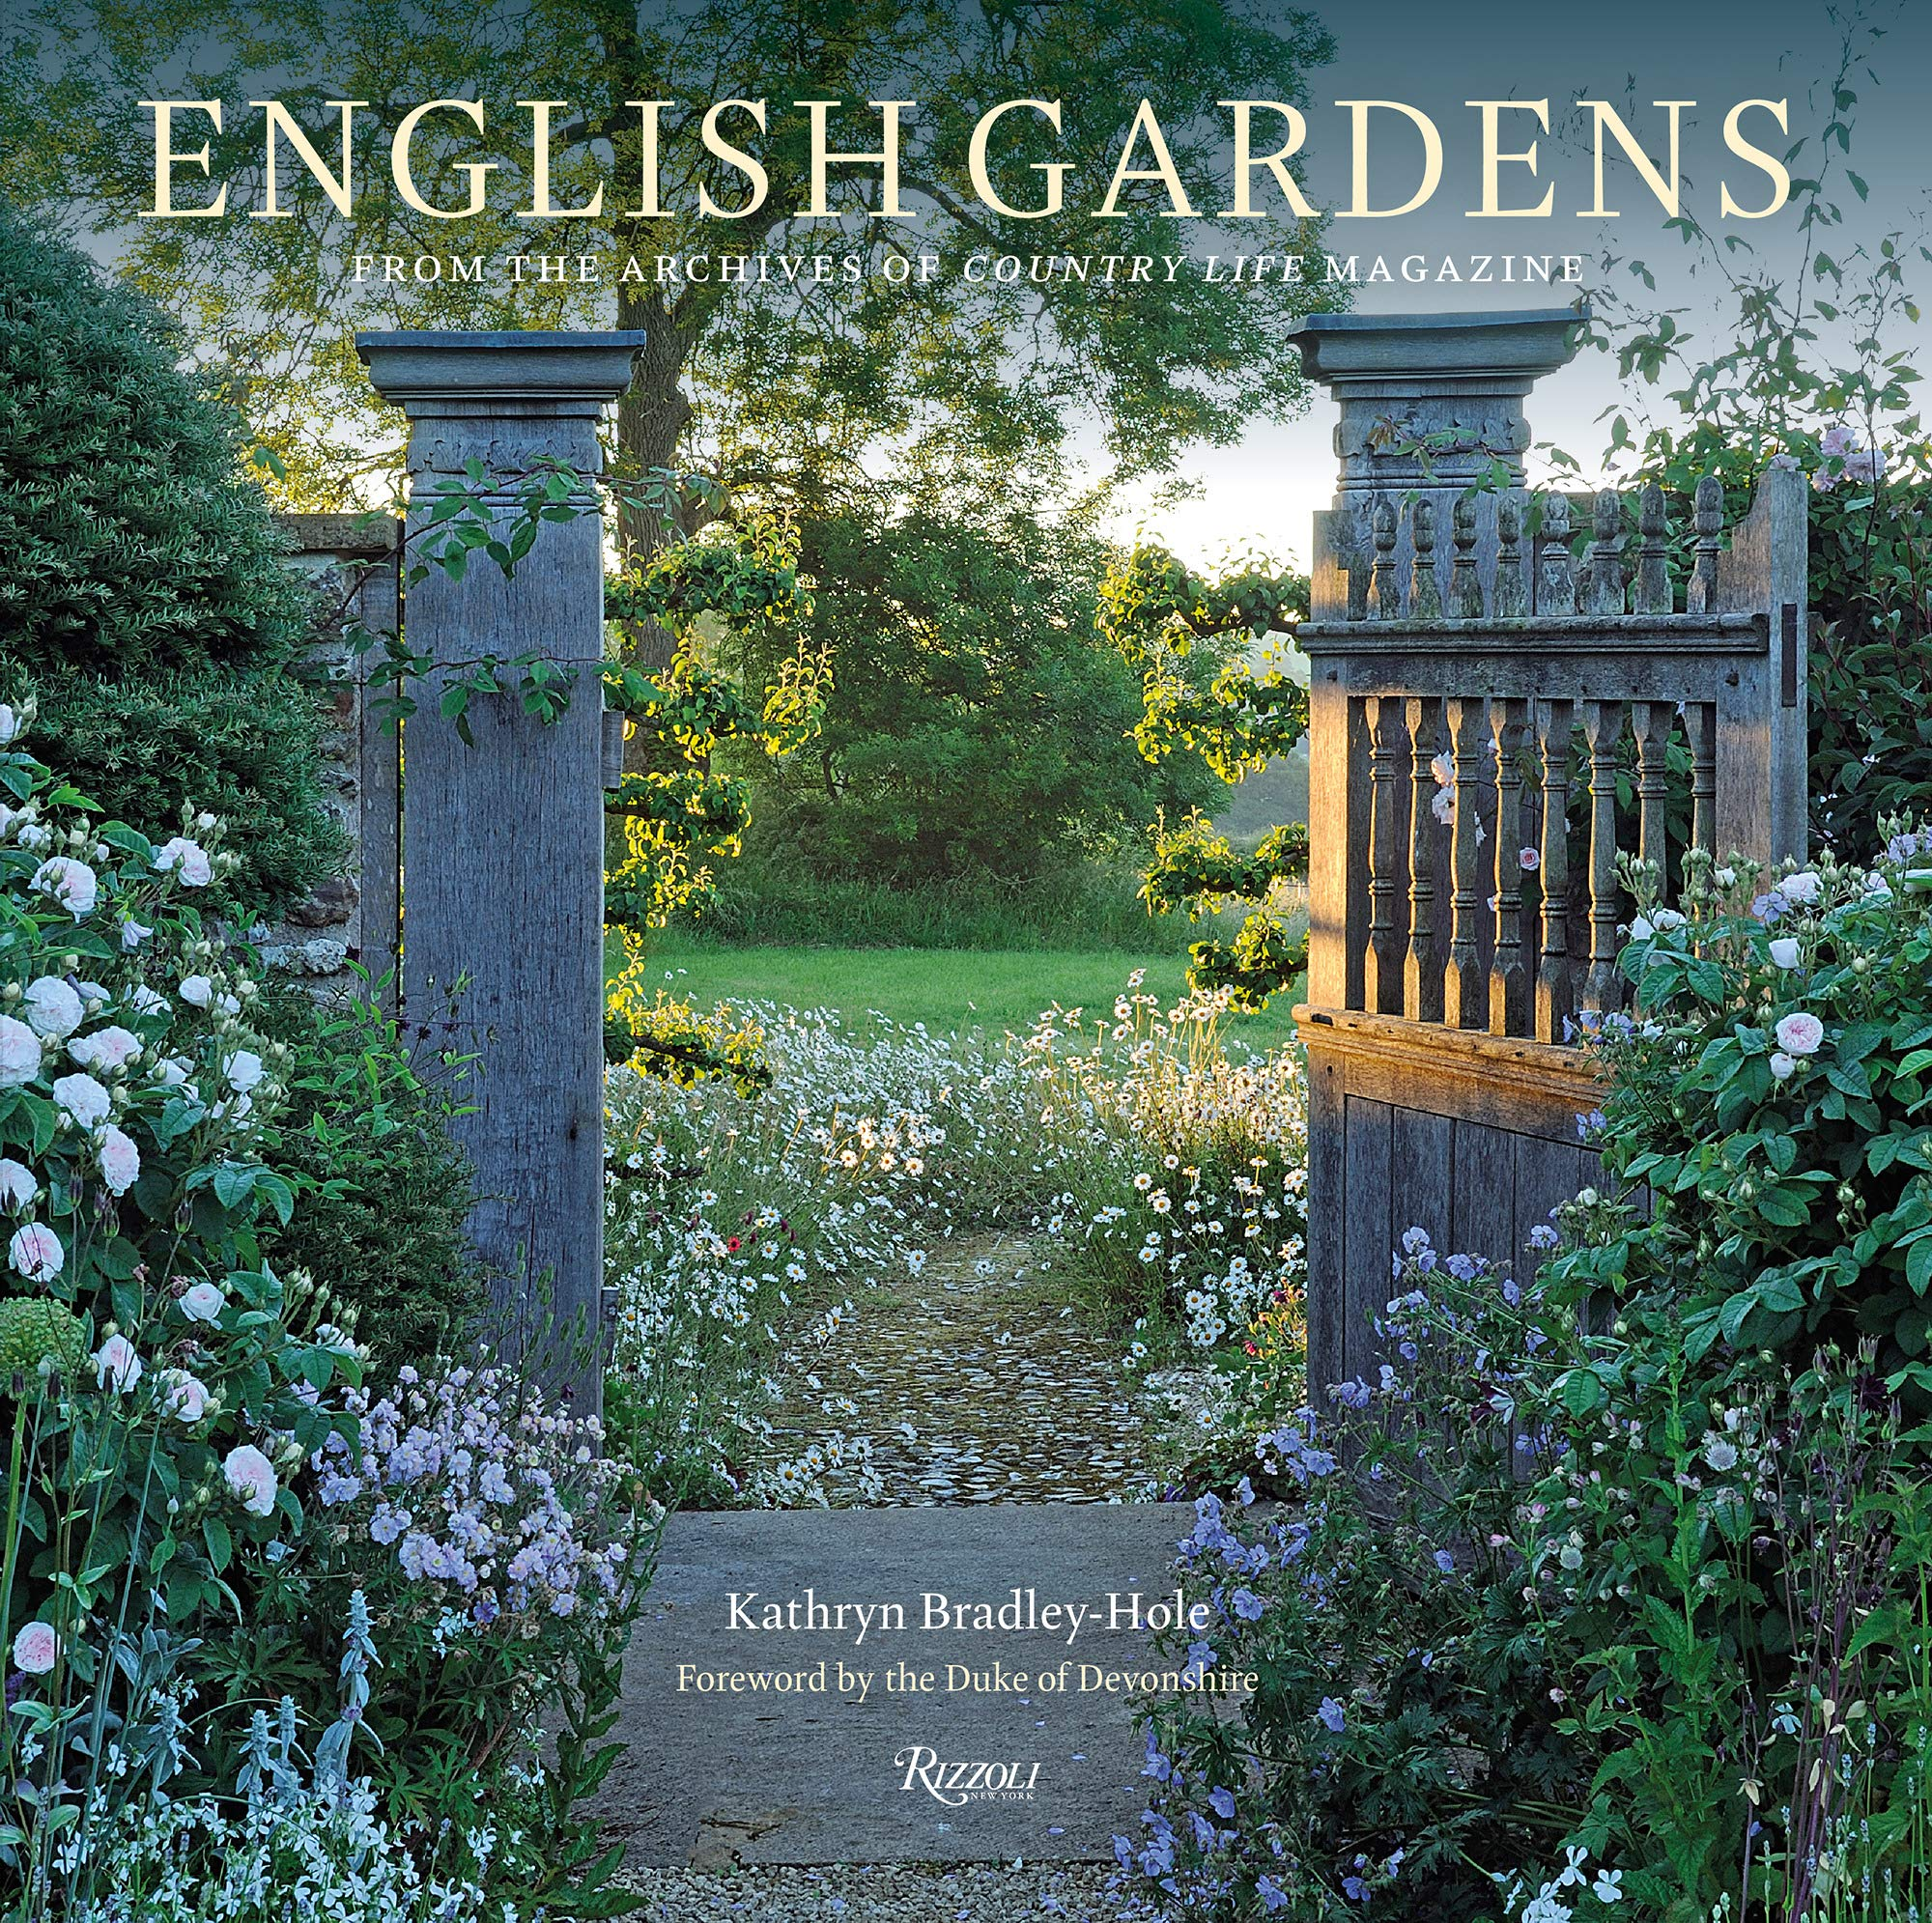 English Gardens: From the Archives of Country Life Magazine by Rizzoli